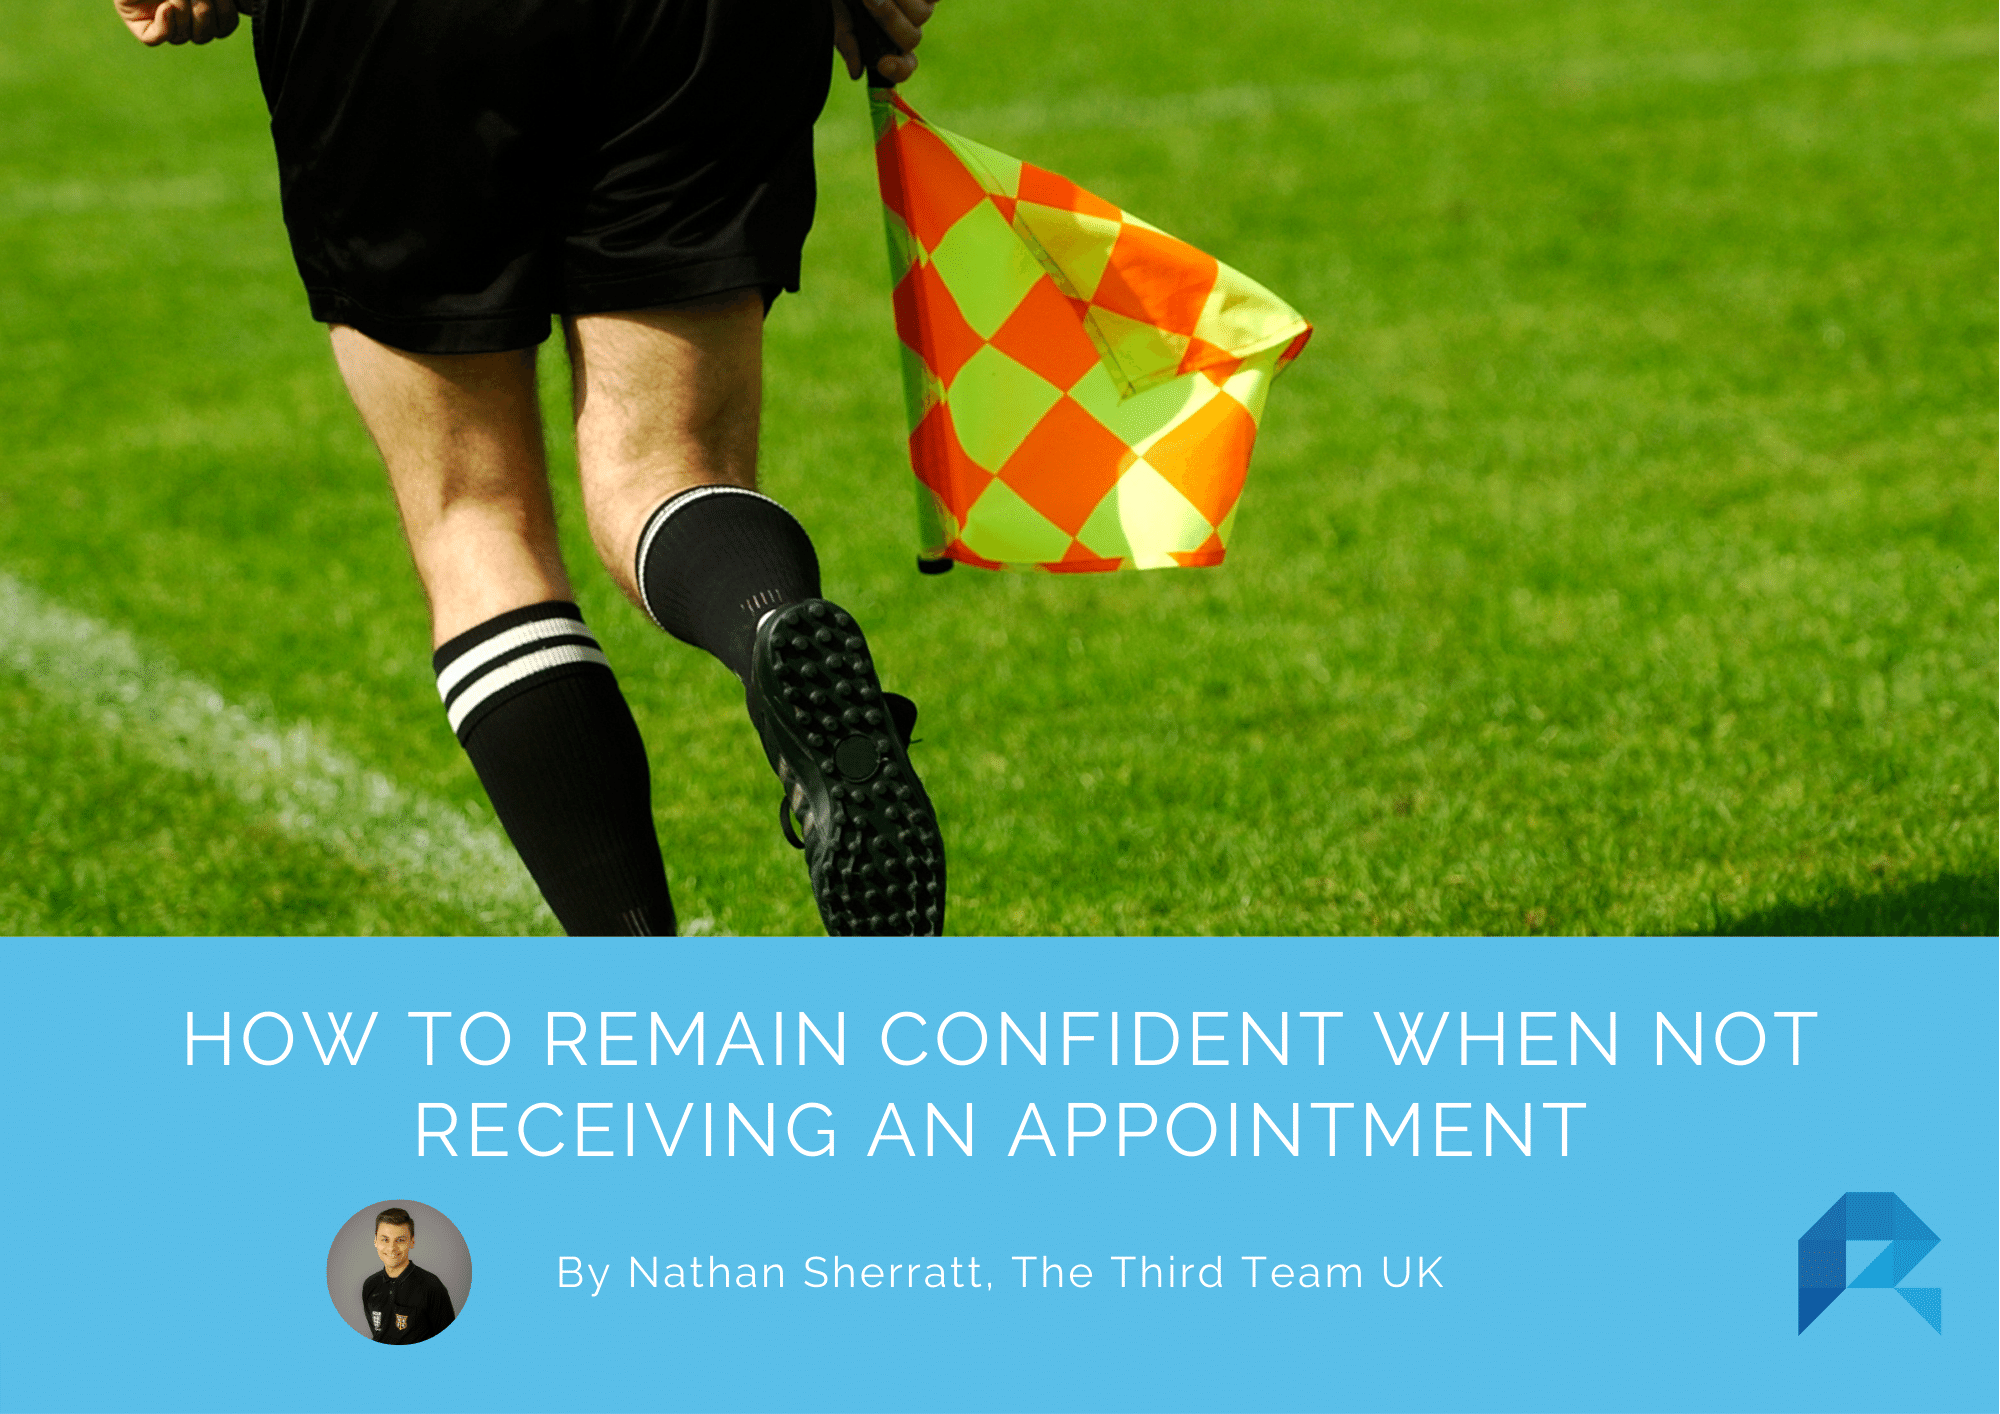 How to Remain Confident When not Receiving an Appointment